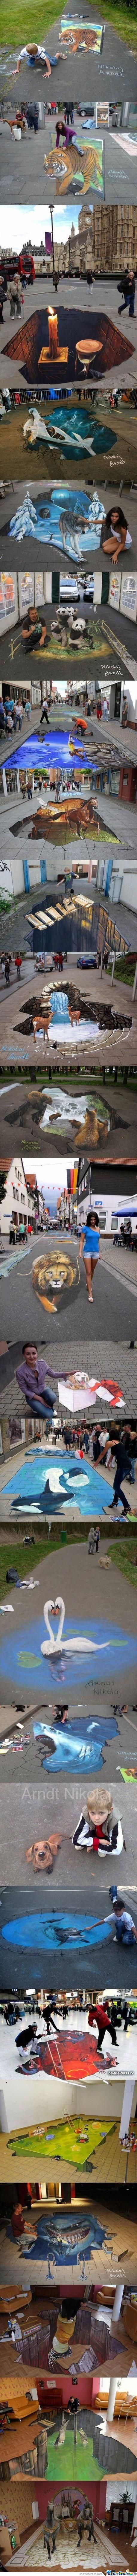 Awesome Street Arts!